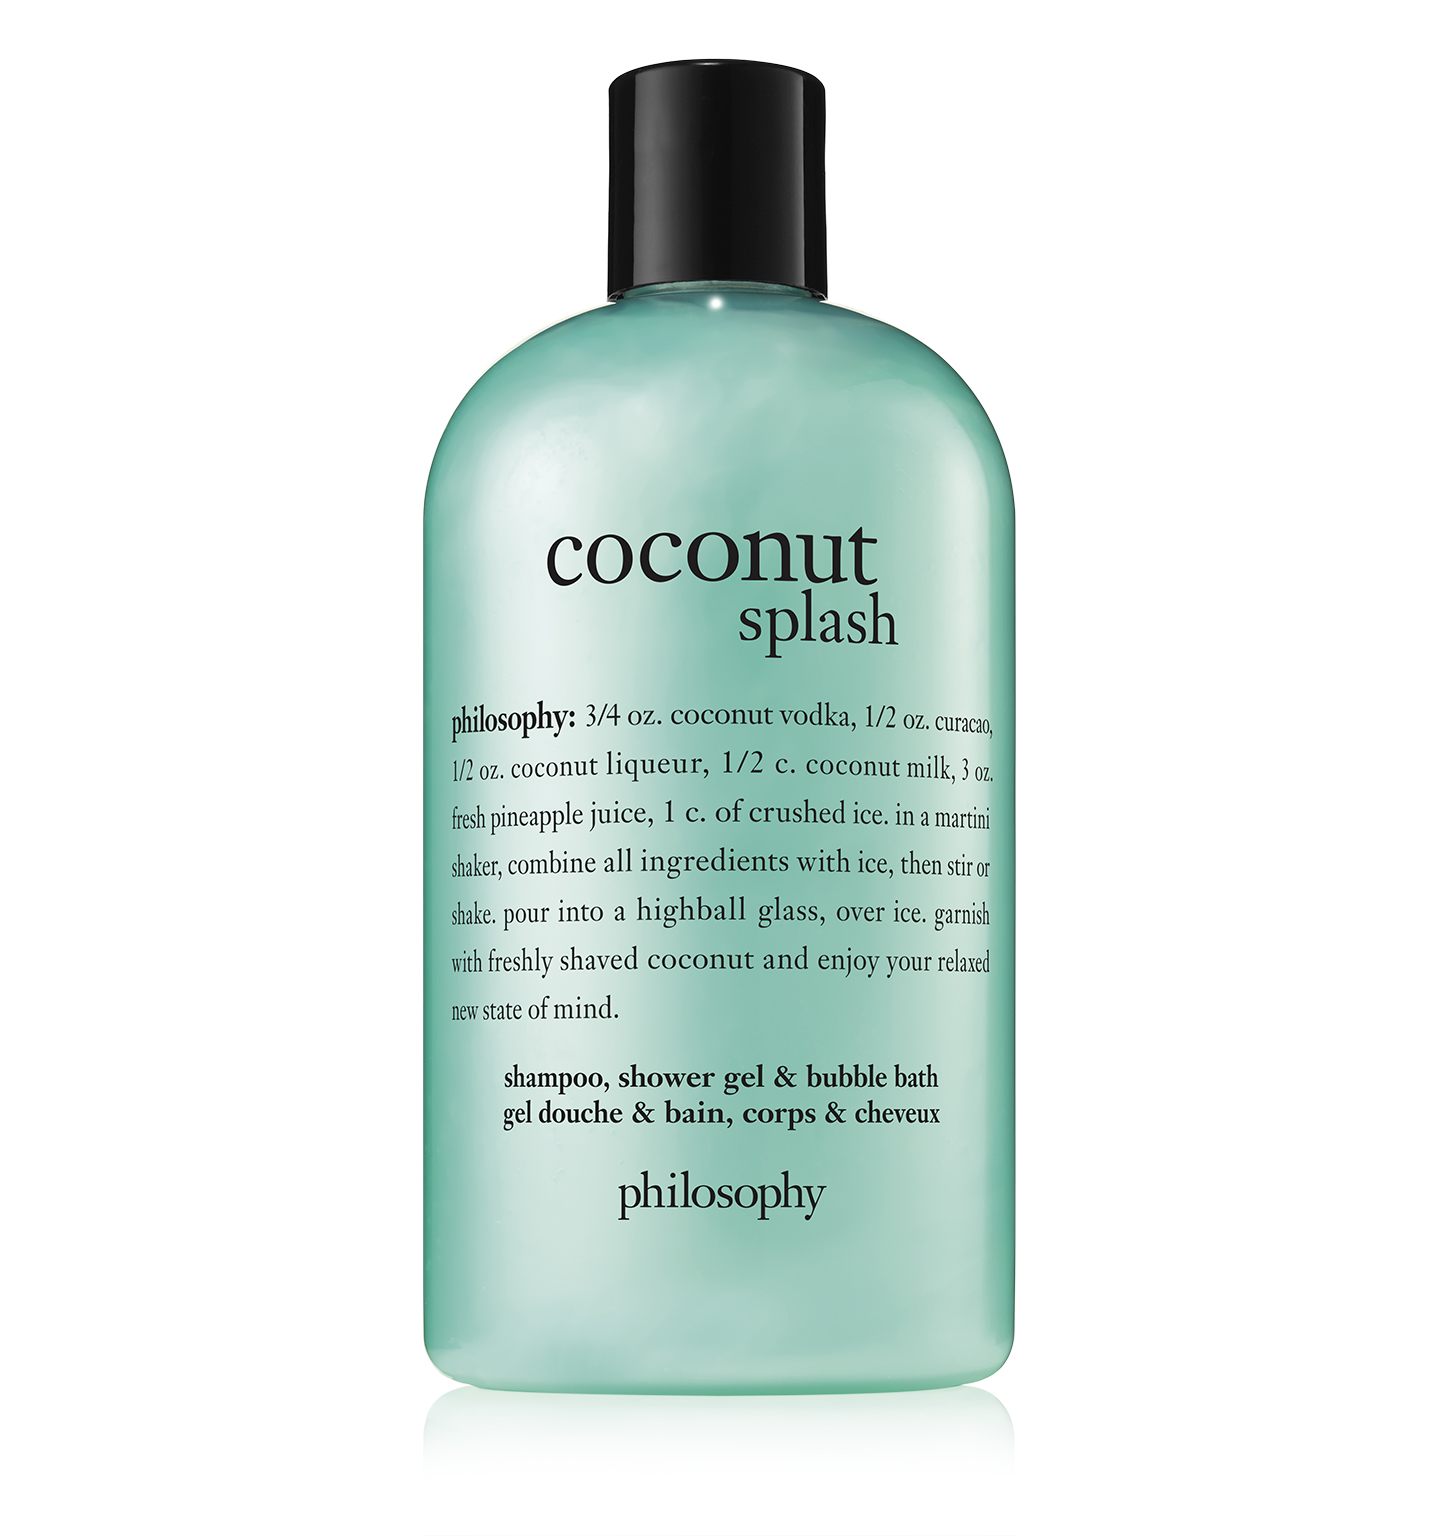 coconut splash shampoo, shower gel & bubble bath